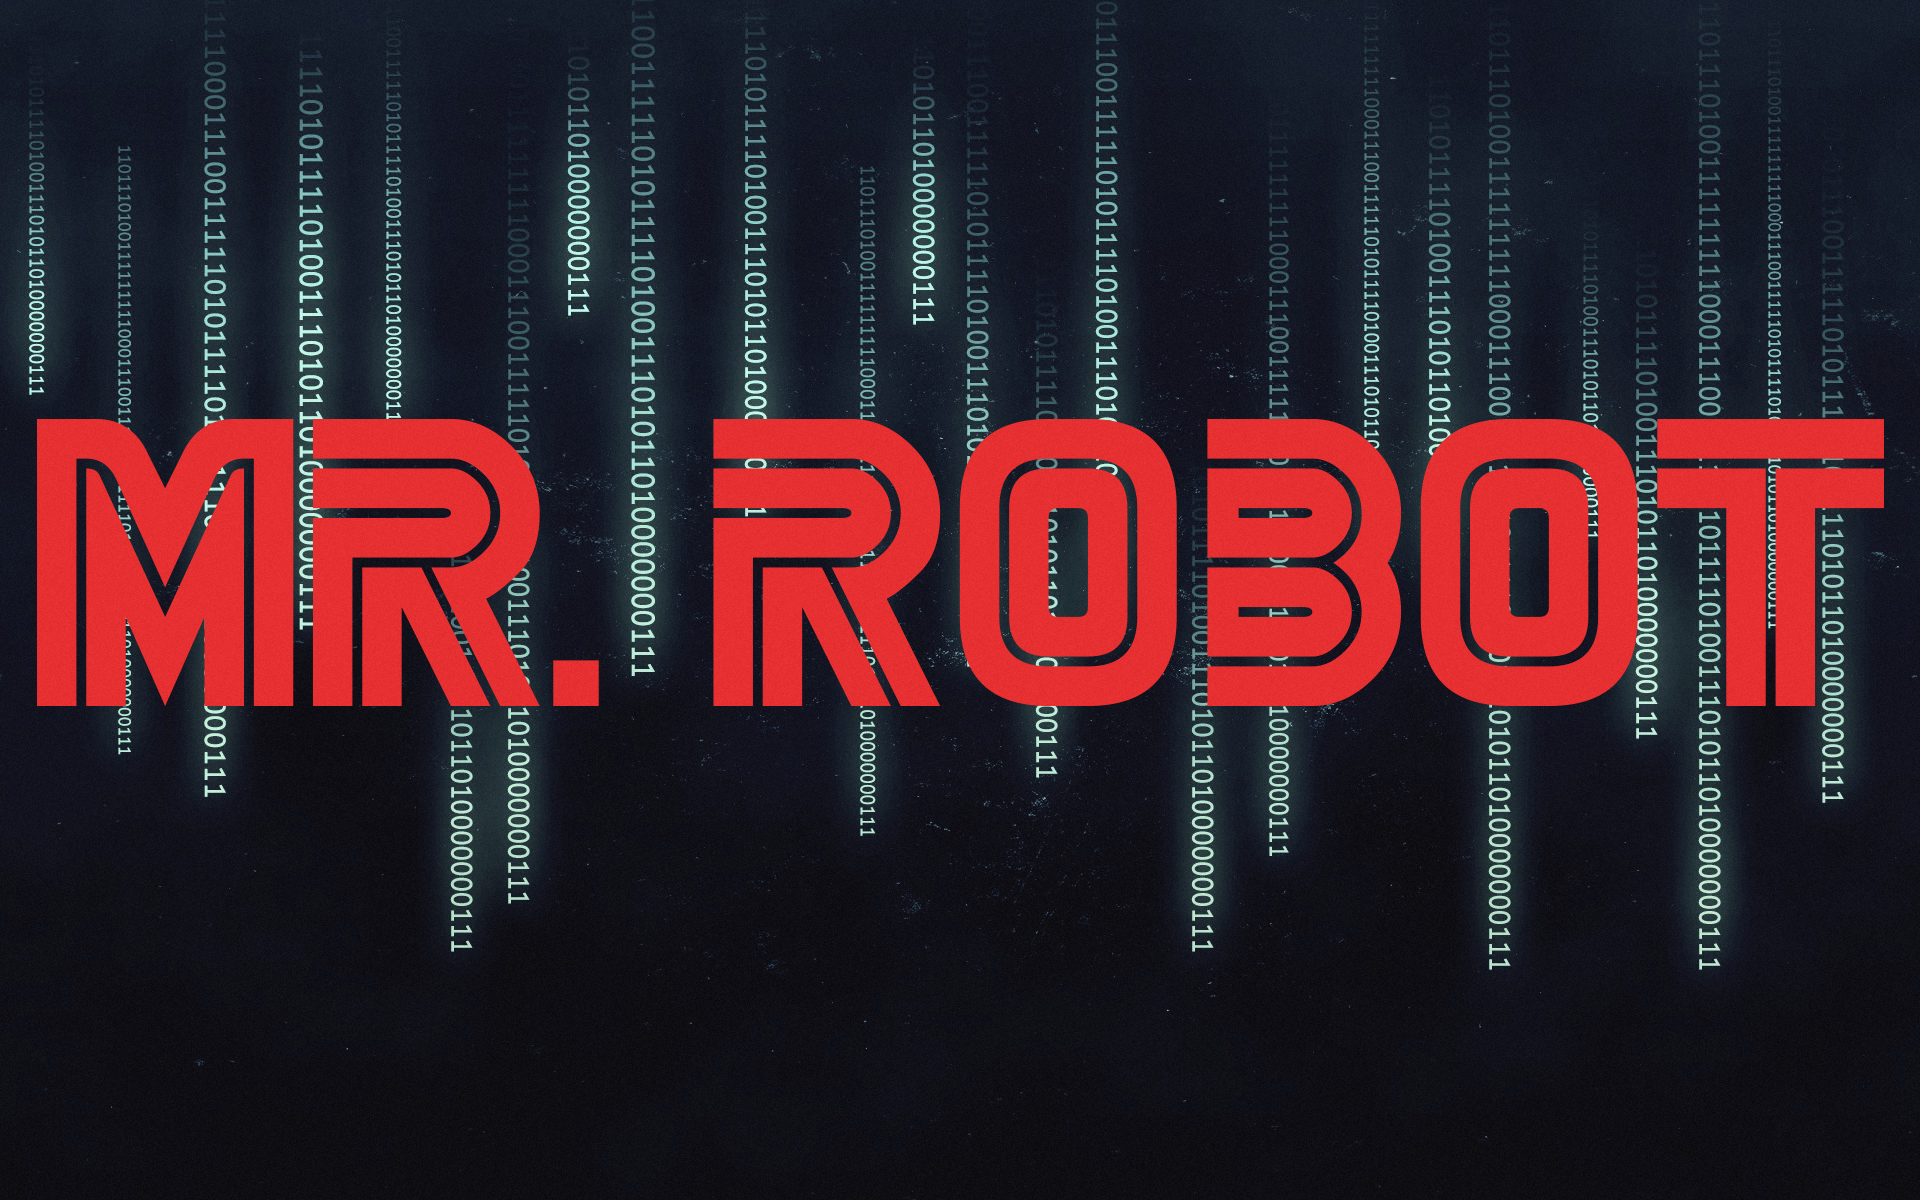 Mr. Robot wallpapers HD - Taringa!